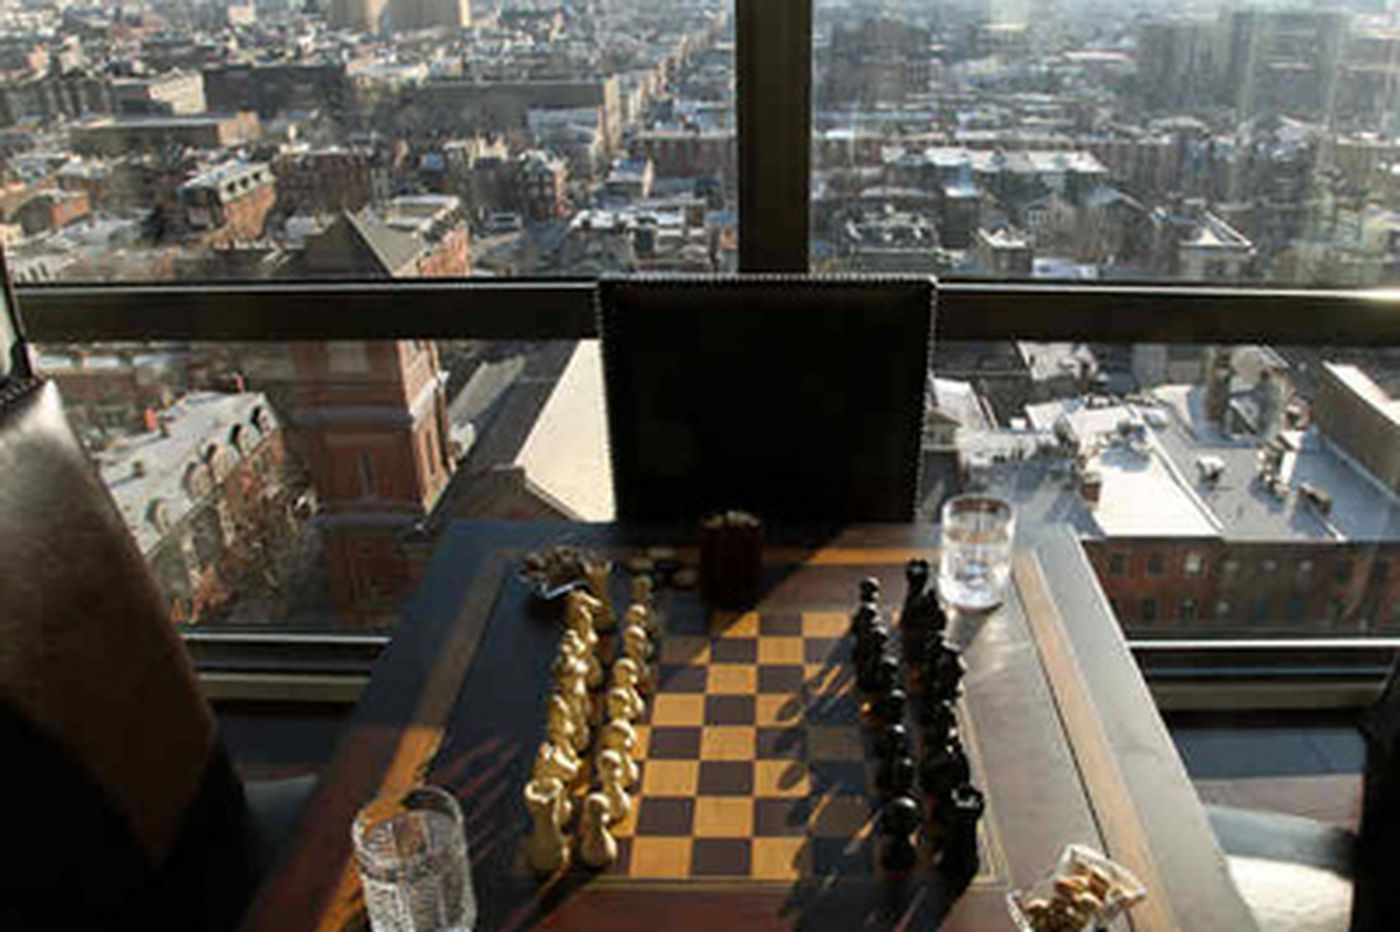 Highest price, $12.5 million, paid for city residence